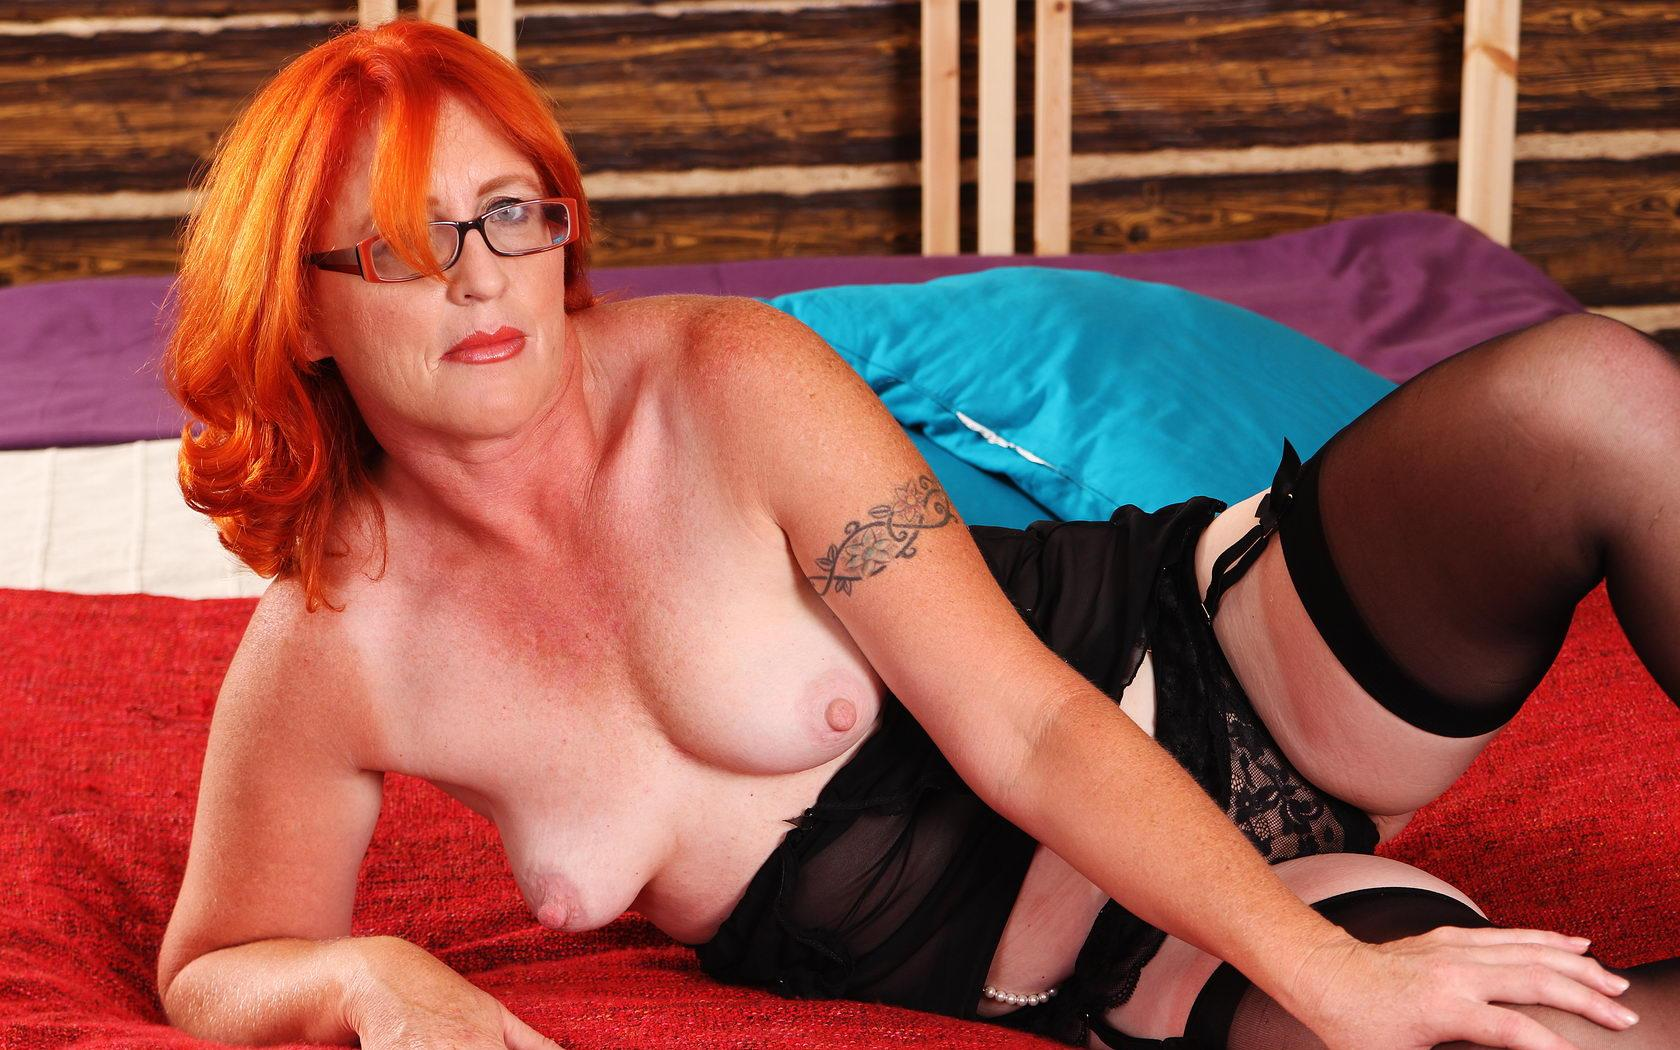 Ashleigh a granny mom a sleazy redhead granny offering her pink